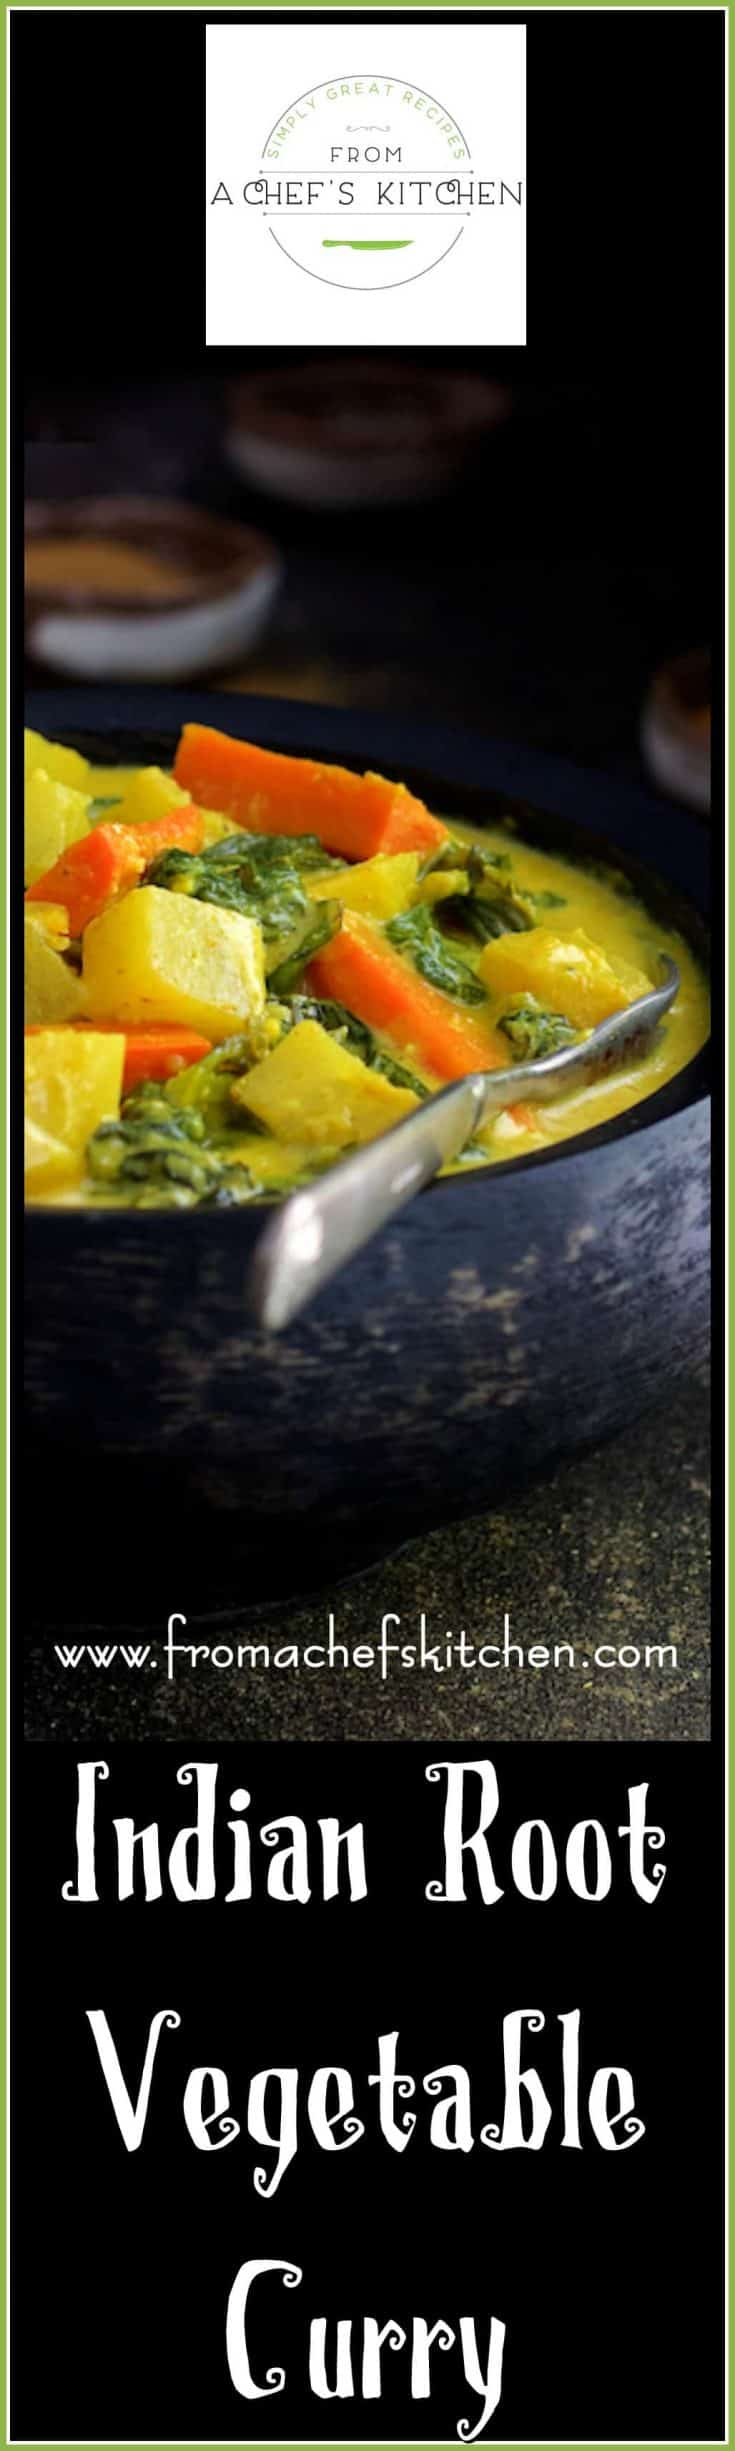 Indian Root Vegetable Curry is hearty and humble but over-the-top with flavor!  It's the perfect down-to-earth dinner anytime. #indianfood #curry #rootvegetable #vegetarian #vegan